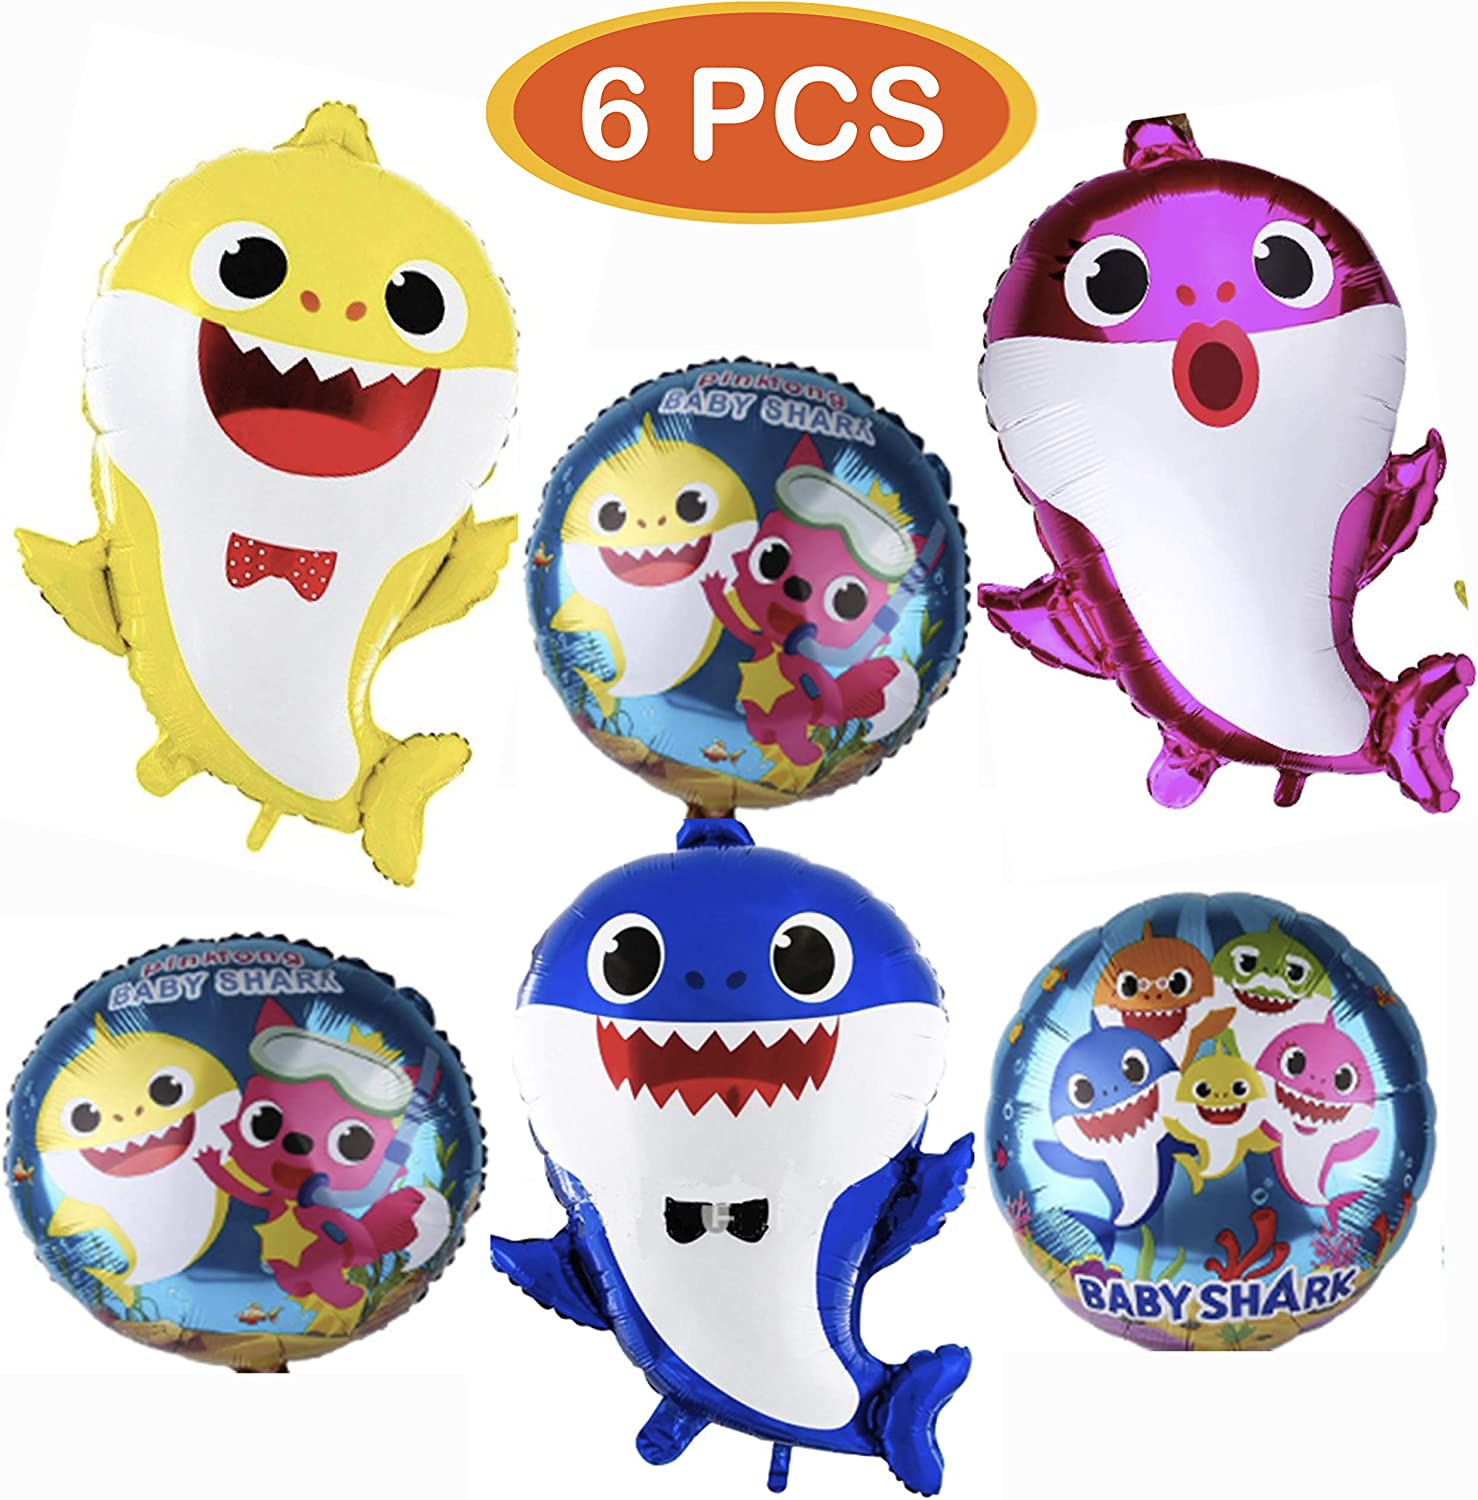 Ferod Baby Shark Balloons, Shark Party Supplies for Baby, Helium baby shark party balloons, Birthday Decorations Baby Shower Party Supplies (6 pcs)